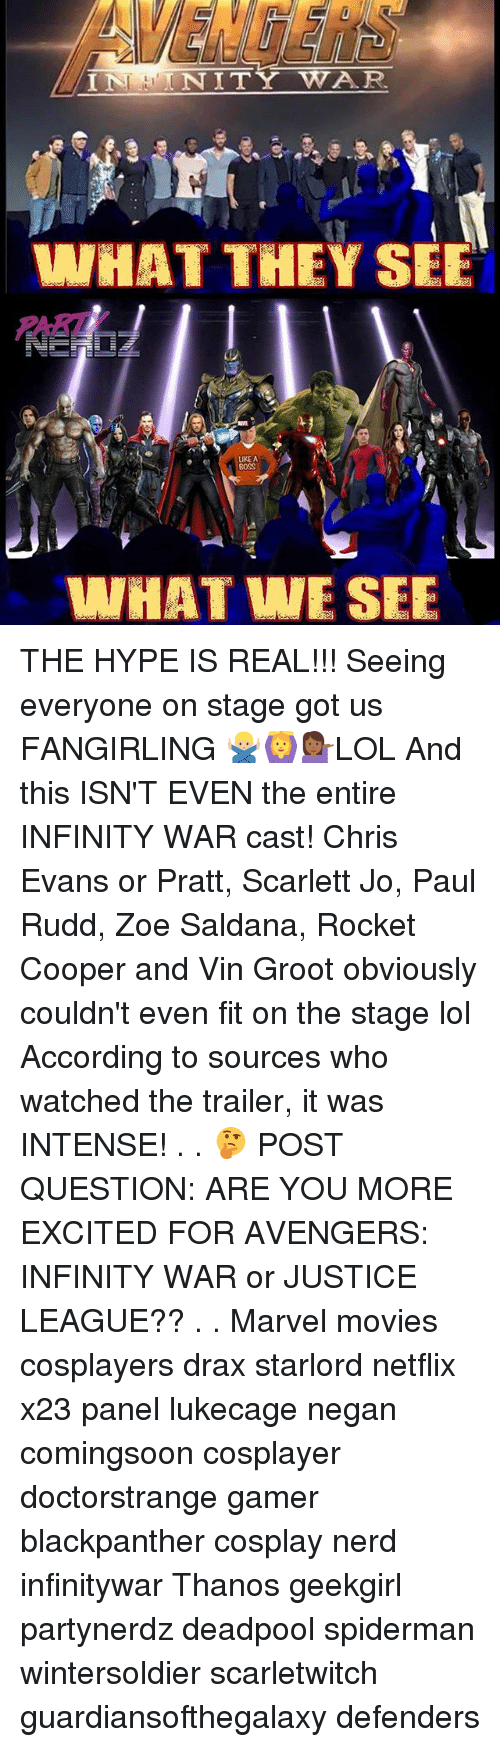 Chris Evans, Hype, and Lol: AVENGER  PART  UKE A  0SS  WHATWE SEE THE HYPE IS REAL!!! Seeing everyone on stage got us FANGIRLING 🙅🏼‍♂️🙆💁🏾‍♀️LOL And this ISN'T EVEN the entire INFINITY WAR cast! Chris Evans or Pratt, Scarlett Jo, Paul Rudd, Zoe Saldana, Rocket Cooper and Vin Groot obviously couldn't even fit on the stage lol According to sources who watched the trailer, it was INTENSE! . . 🤔 POST QUESTION: ARE YOU MORE EXCITED FOR AVENGERS: INFINITY WAR or JUSTICE LEAGUE?? . . Marvel movies cosplayers drax starlord netflix x23 panel lukecage negan comingsoon cosplayer doctorstrange gamer blackpanther cosplay nerd infinitywar Thanos geekgirl partynerdz deadpool spiderman wintersoldier scarletwitch guardiansofthegalaxy defenders